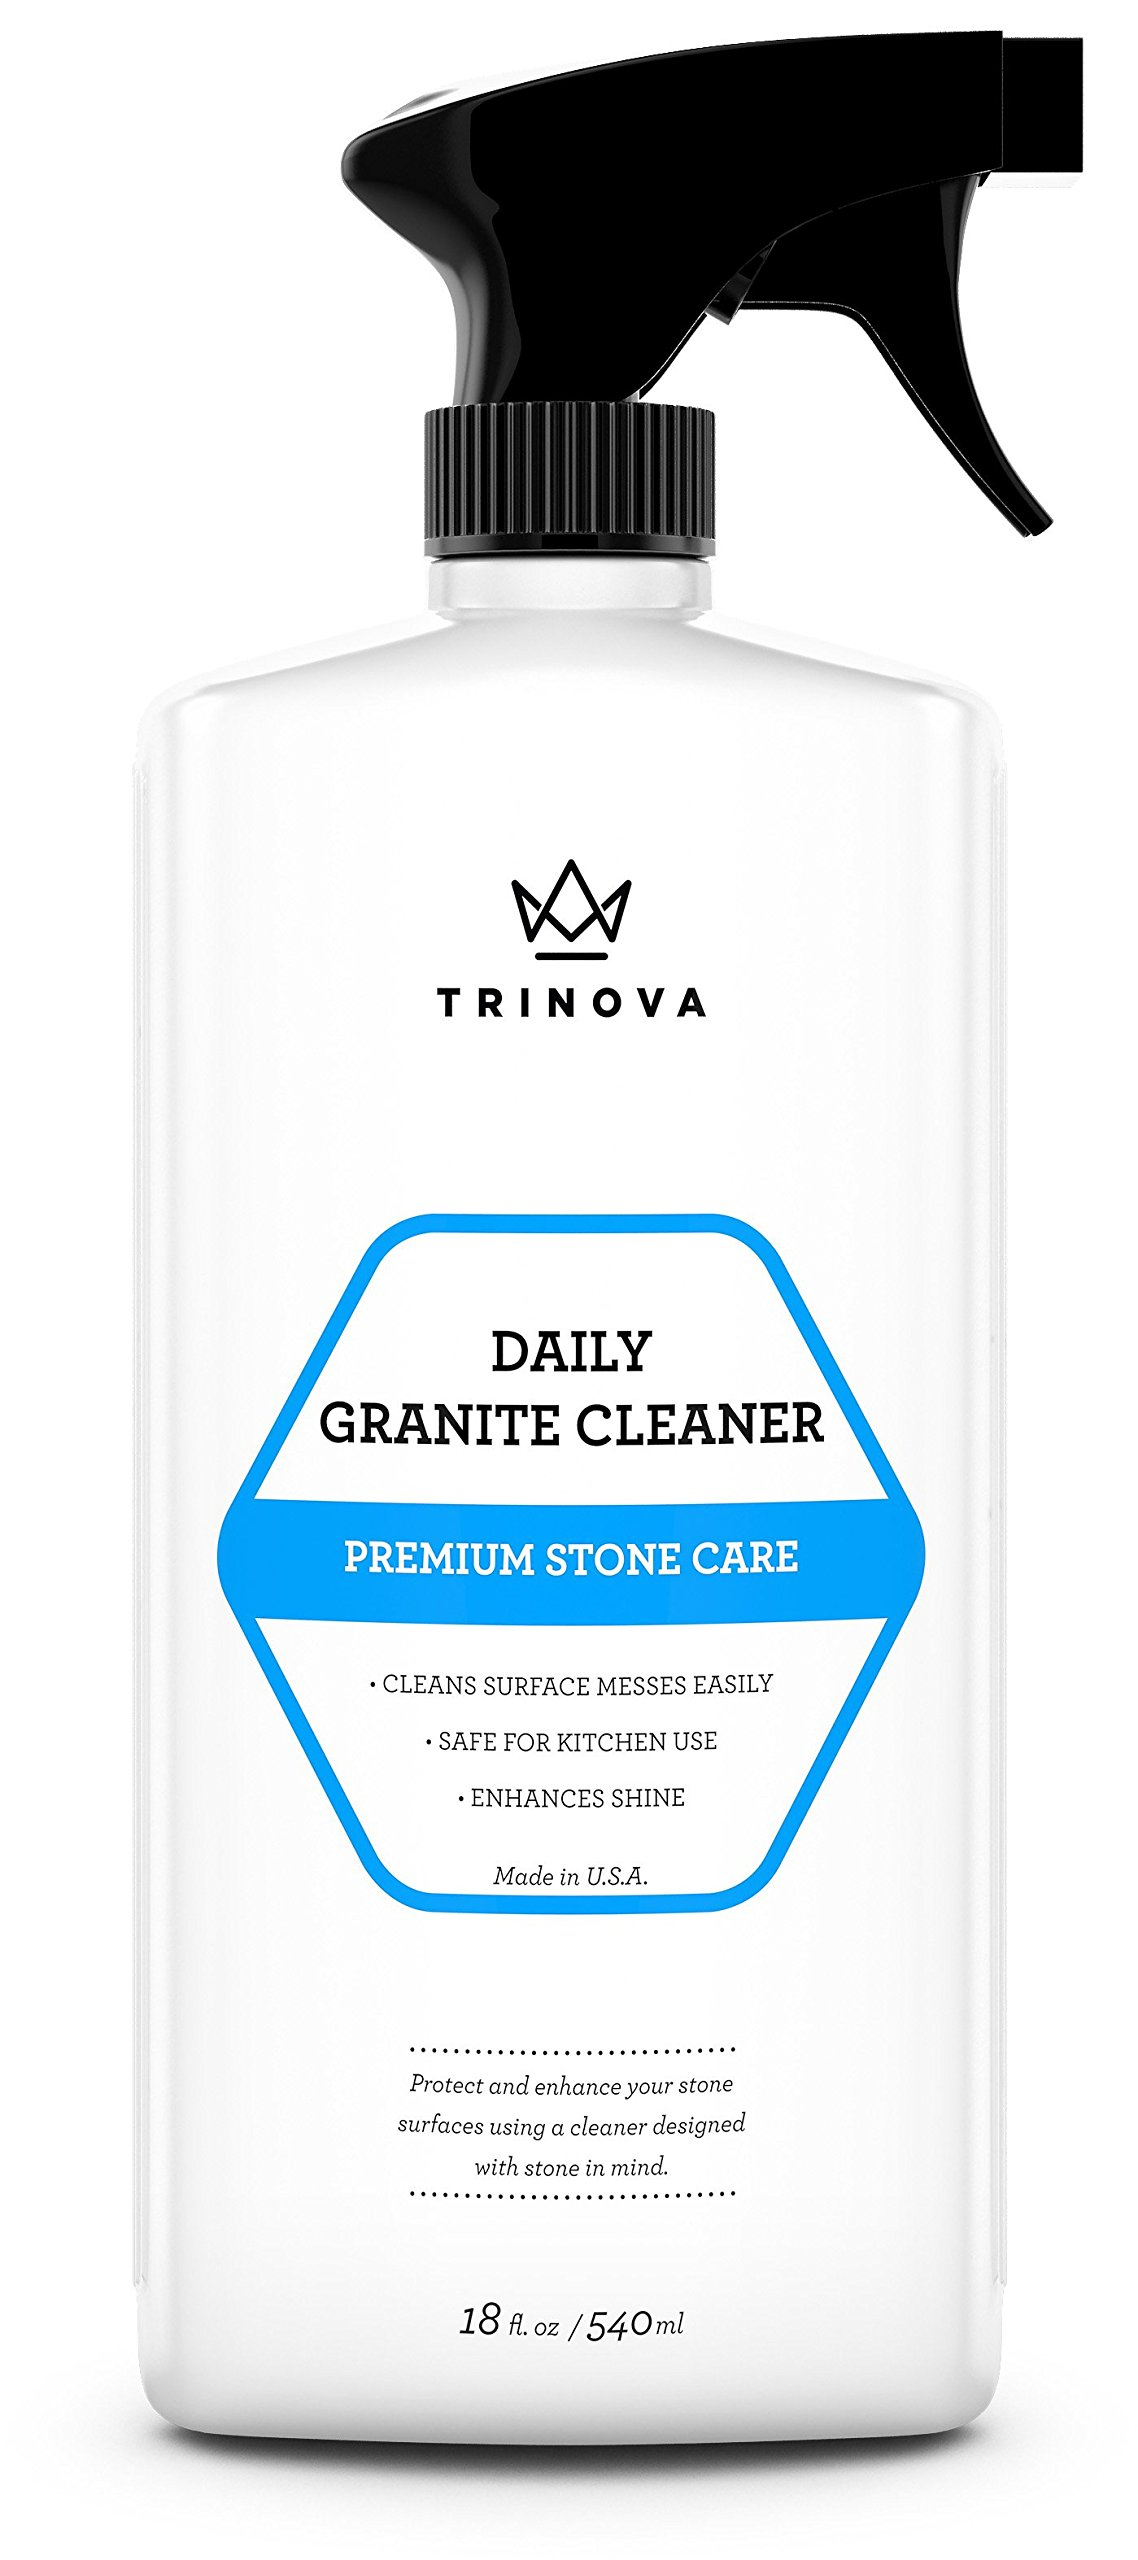 Granite Cleaner And Polish For Daily Use - Enhances Shine And Goes On Streakl.. 8